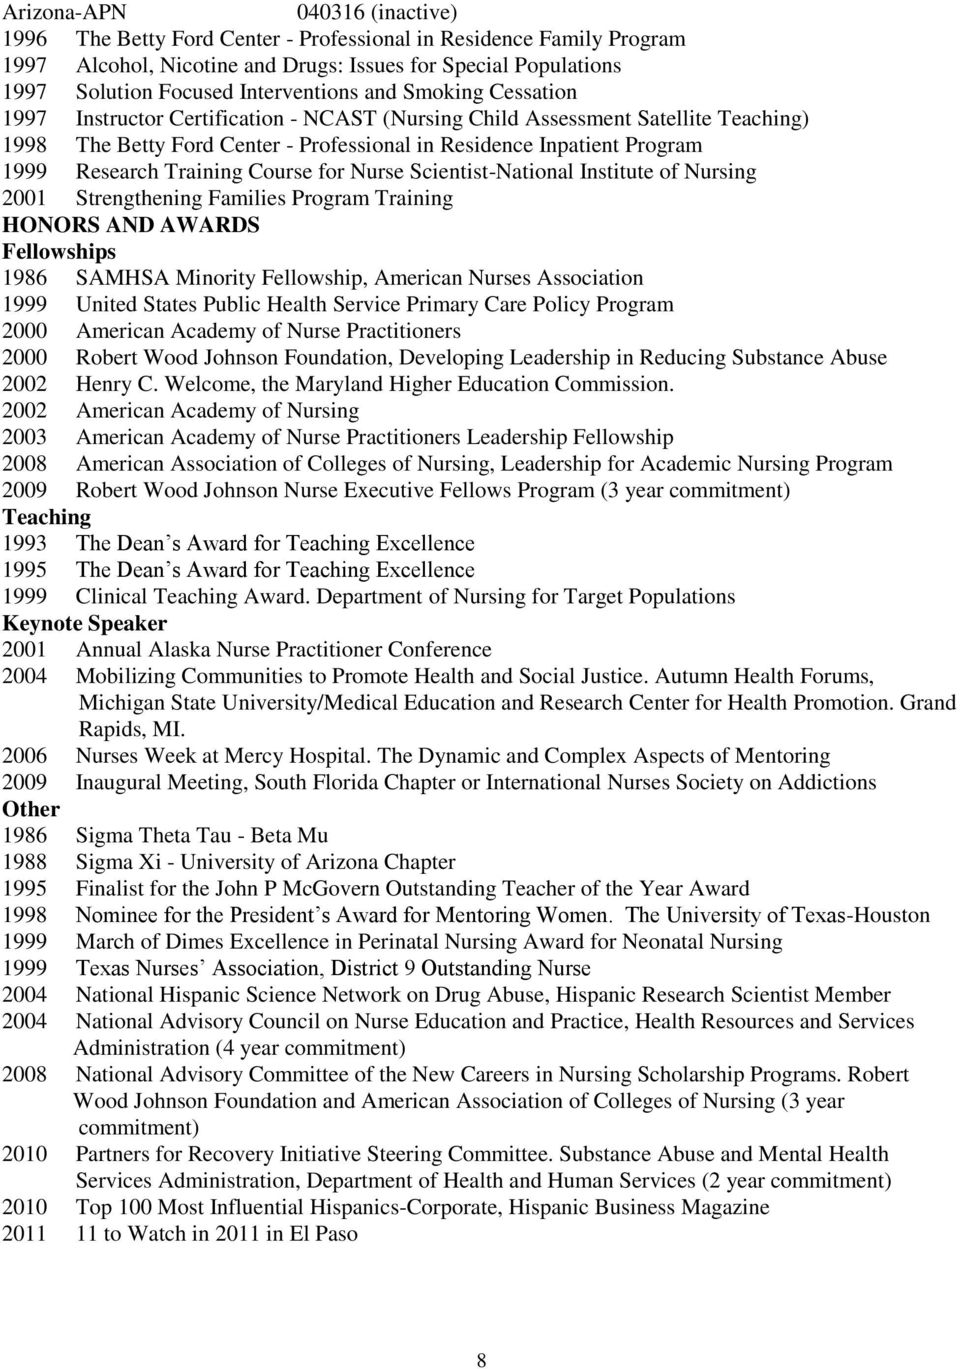 Research Training Course for Nurse Scientist-National Institute of Nursing 2001 Strengthening Families Program Training HONORS AND AWARDS Fellowships 1986 SAMHSA Minority Fellowship, American Nurses